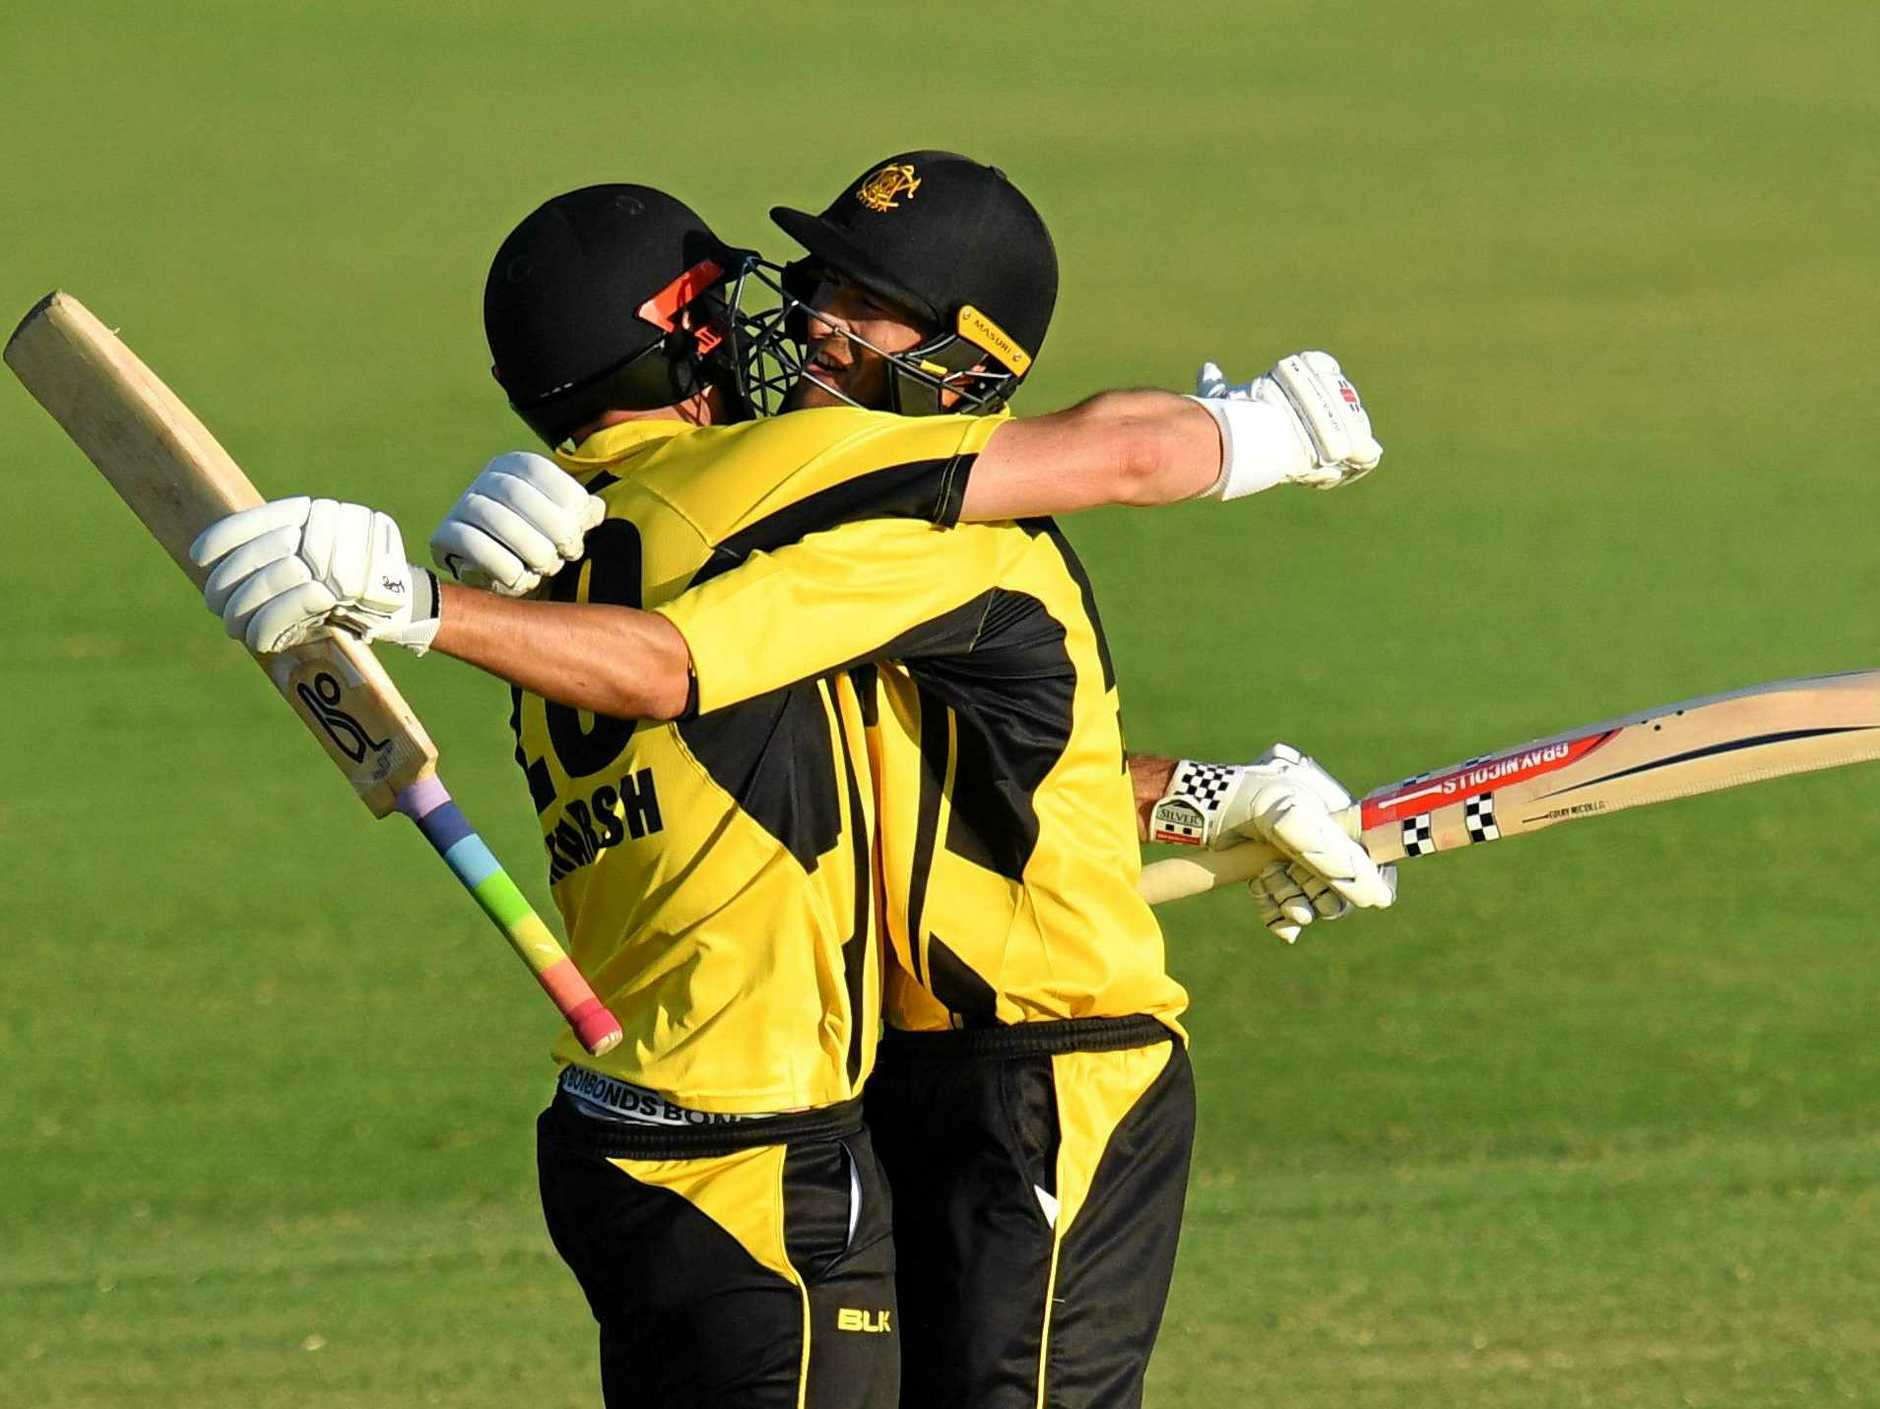 Shaun Marsh and Ashton Agar celebrate Western Australia's win over Queensland in the Marsh One-Day Cup final at Allan Border Field on Tuesday.  Picture: Darren England/AAP